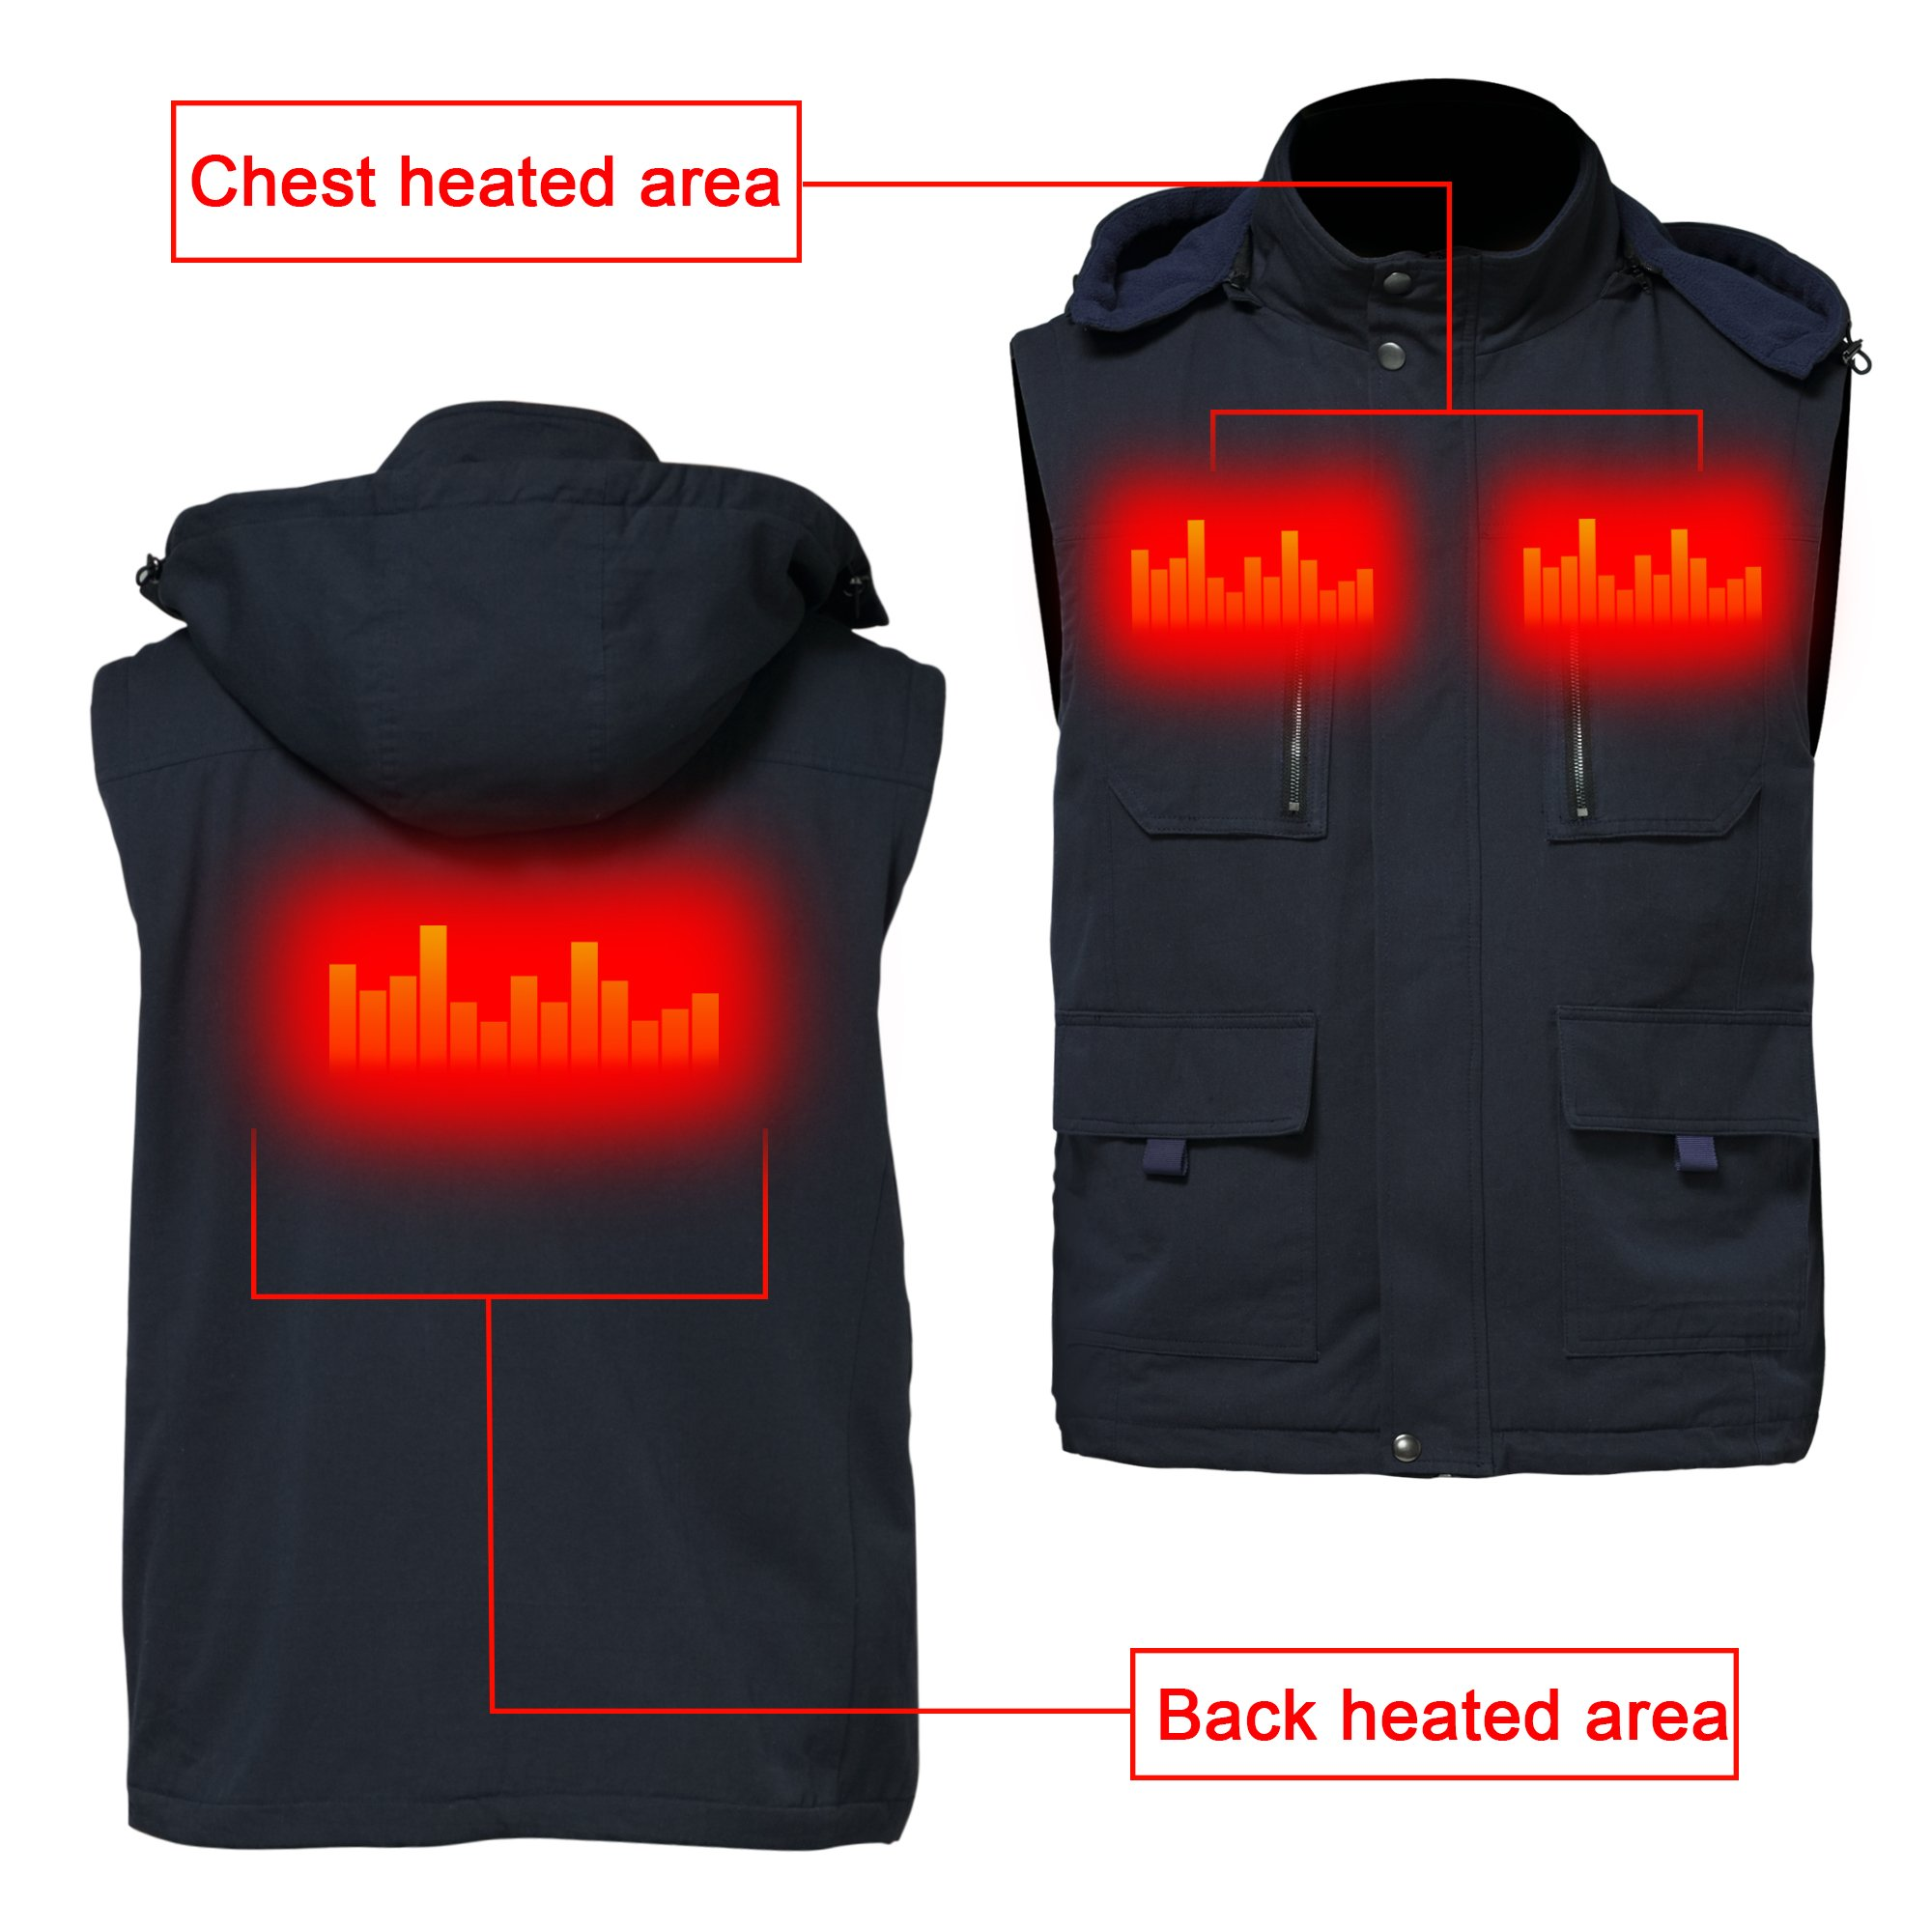 GLOBAL VASION Electric Warmer Rechargeable Heated Vest ...